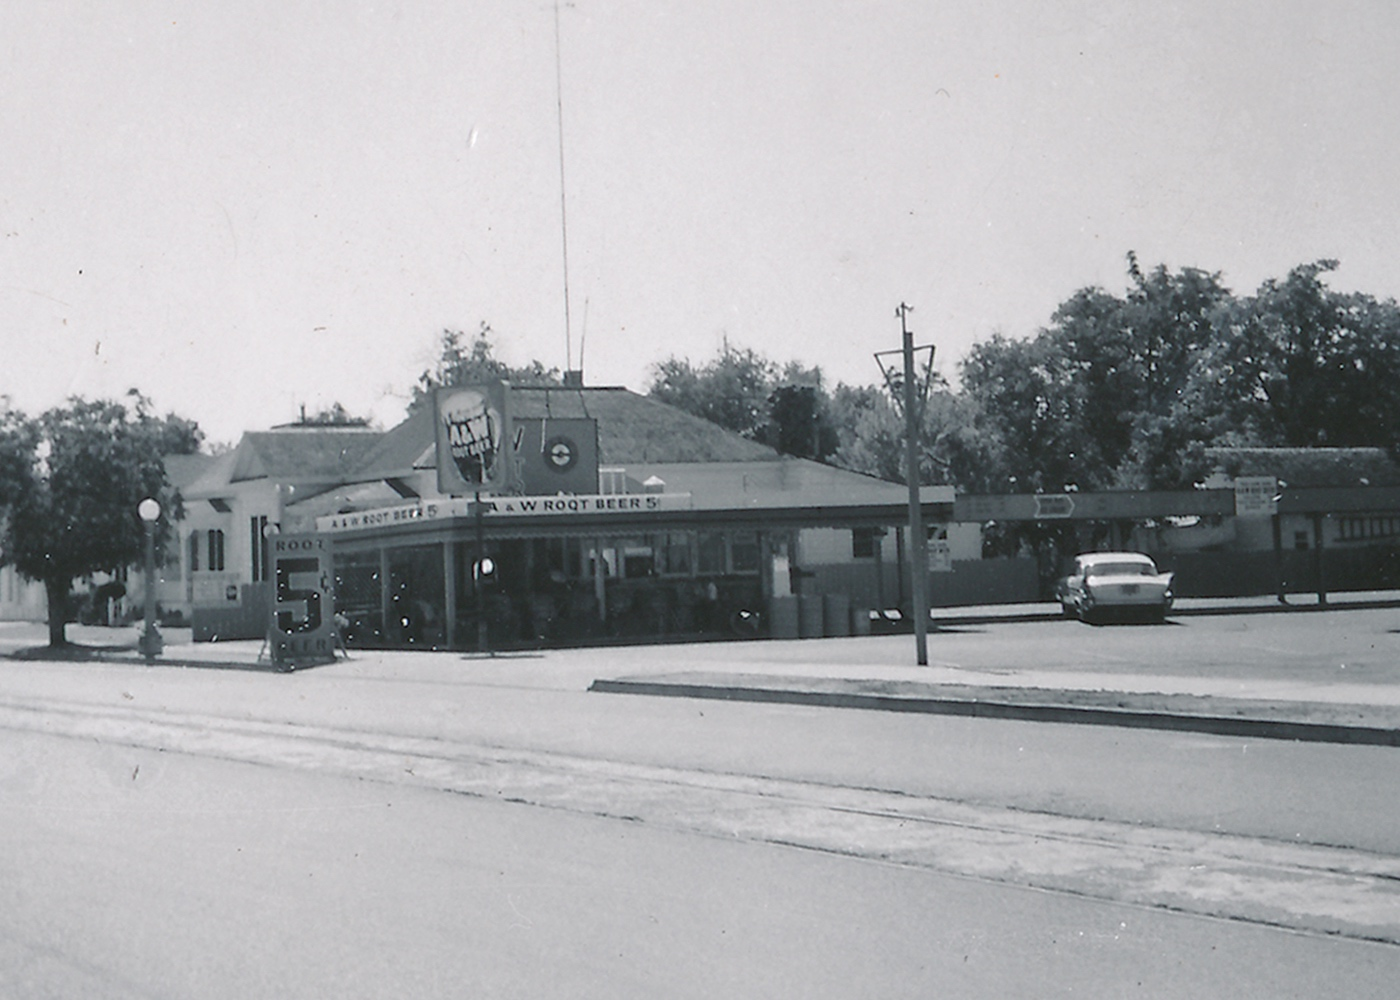 Black and white photo of old A&W Restaurant in Lodi, California